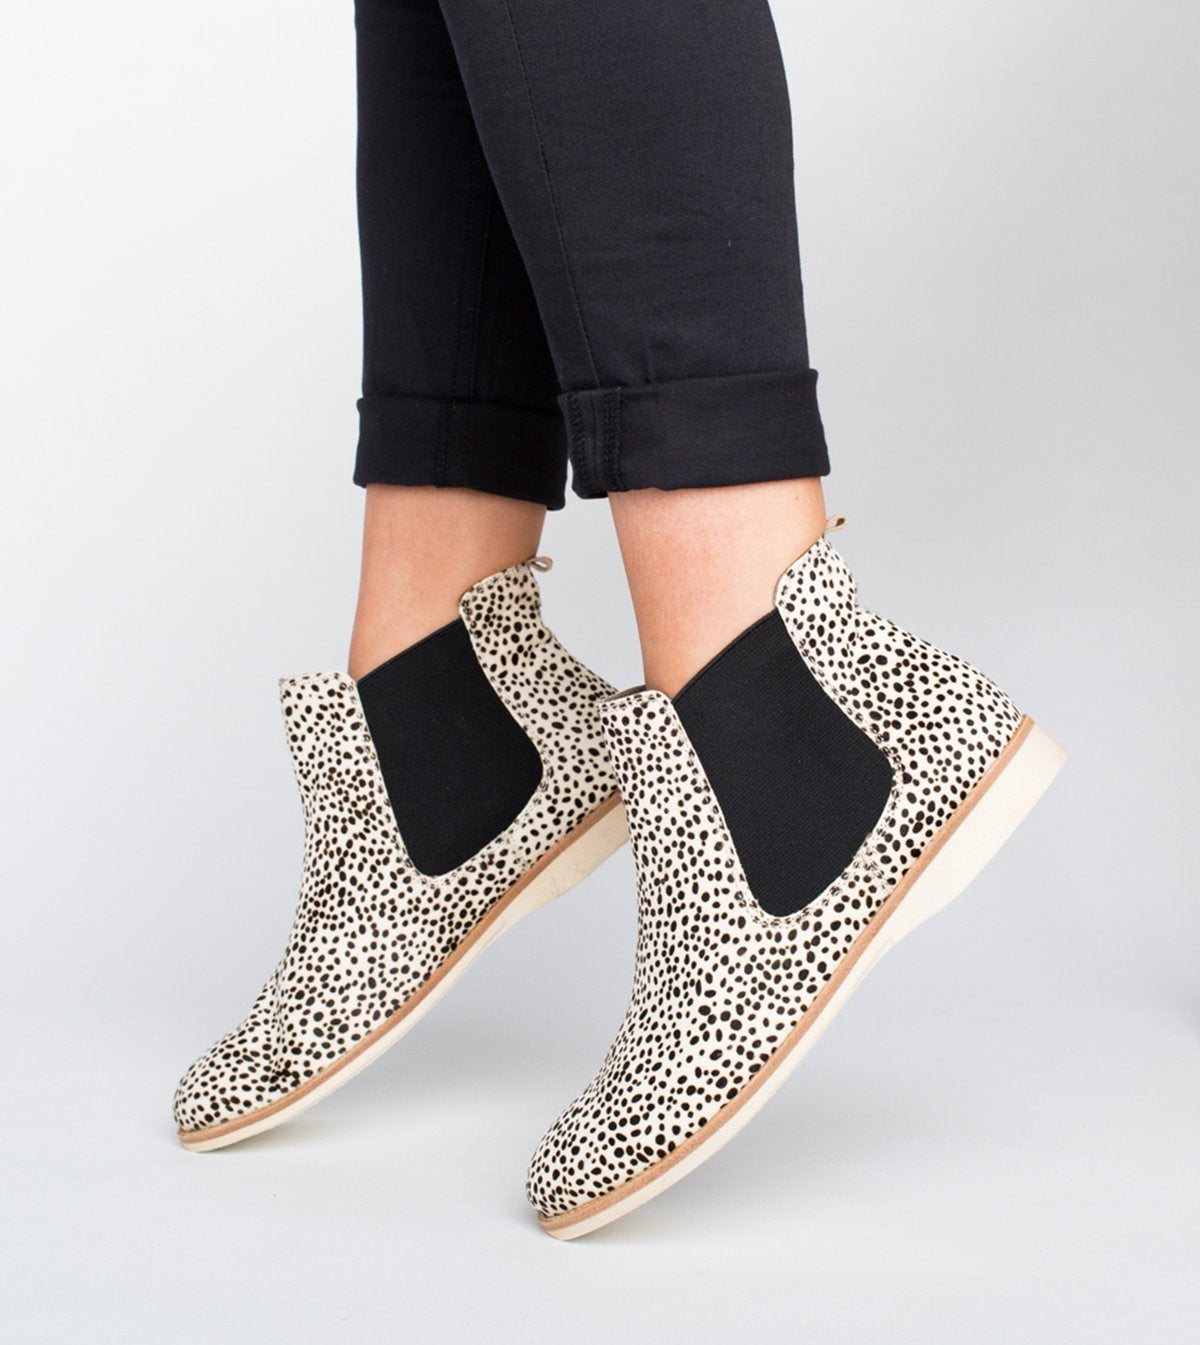 Rollie Chelsea Snow Leopard Shoes